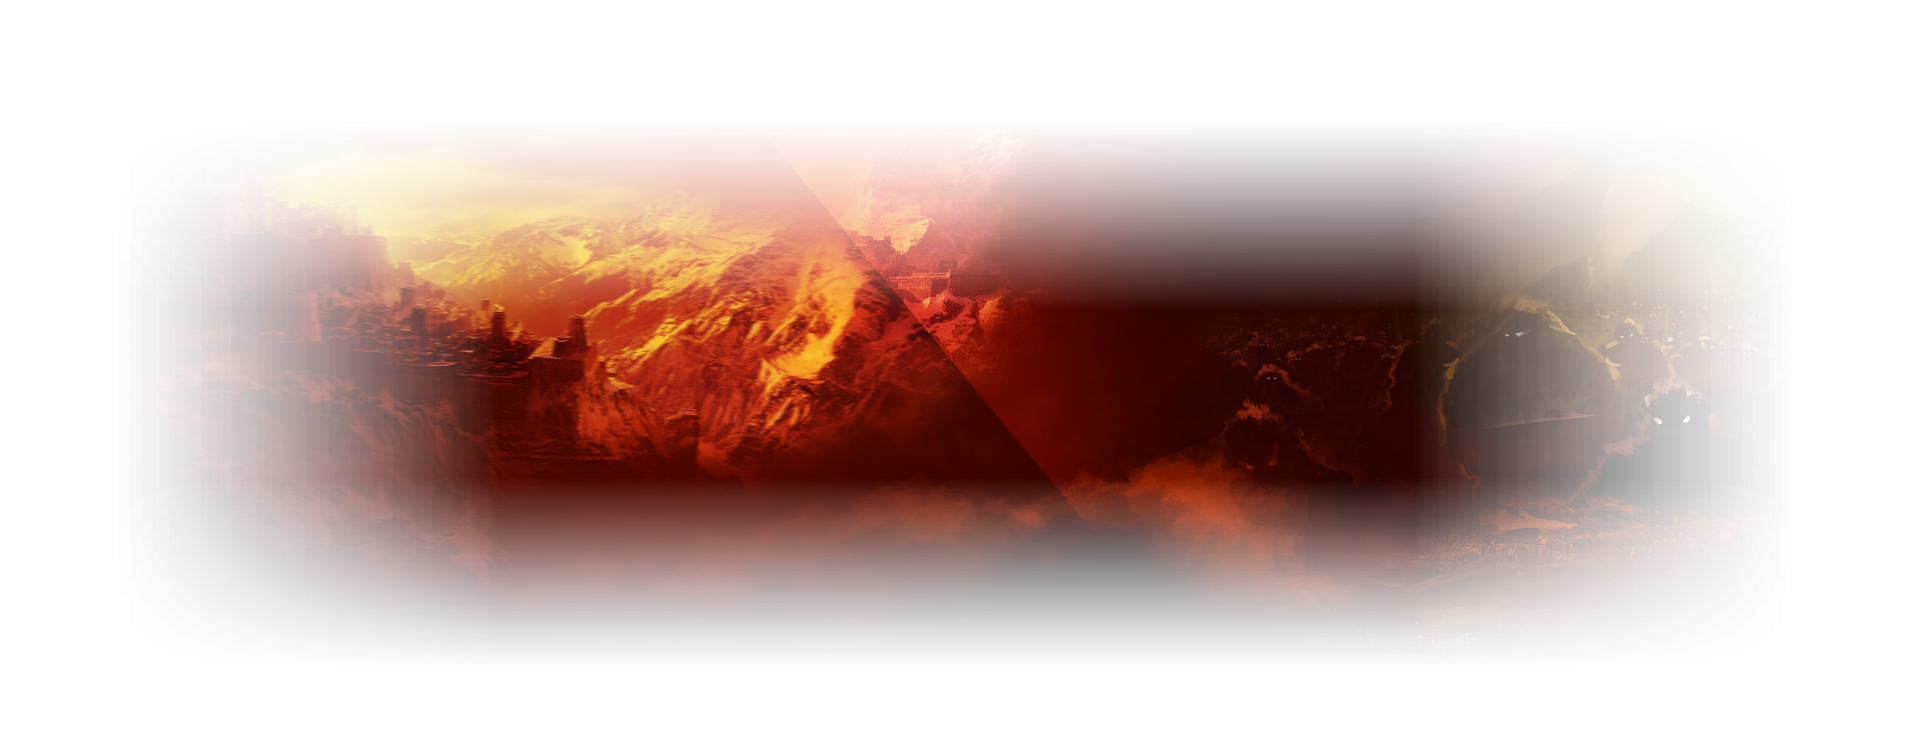 AOCG_G2_FV_FW_FS_BACKGROUND.png